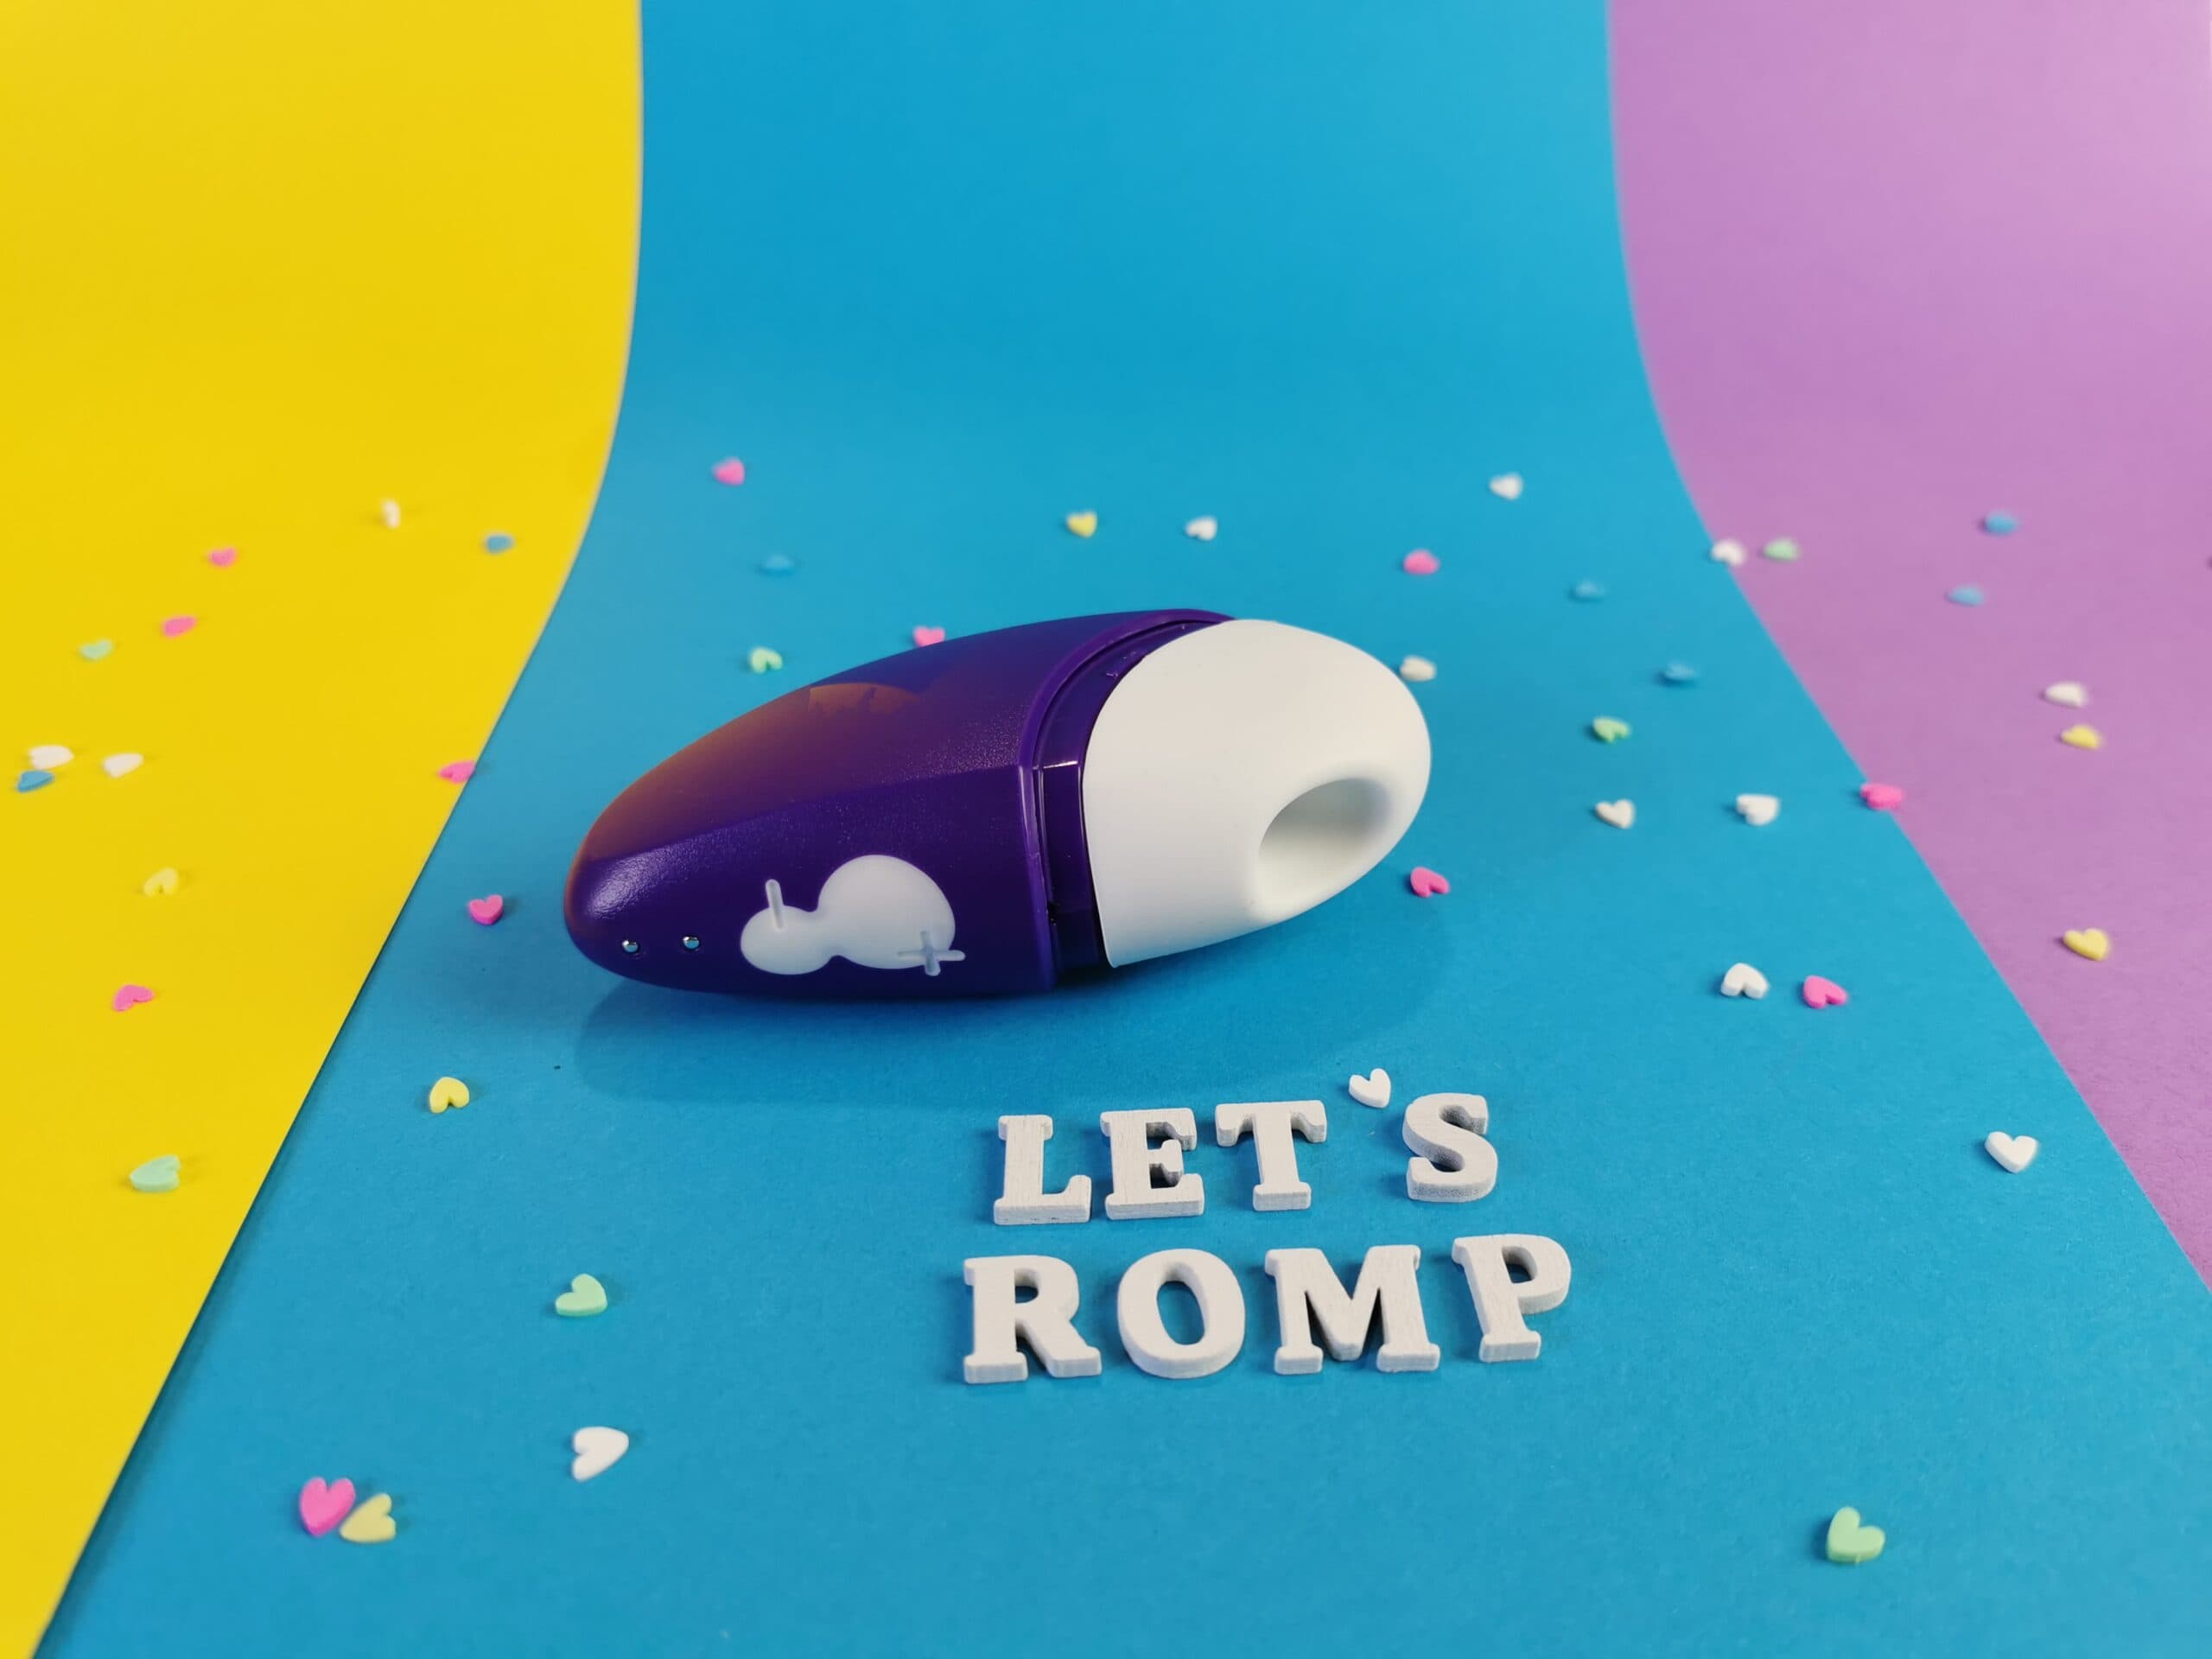 ROMP Free – sekstoy review